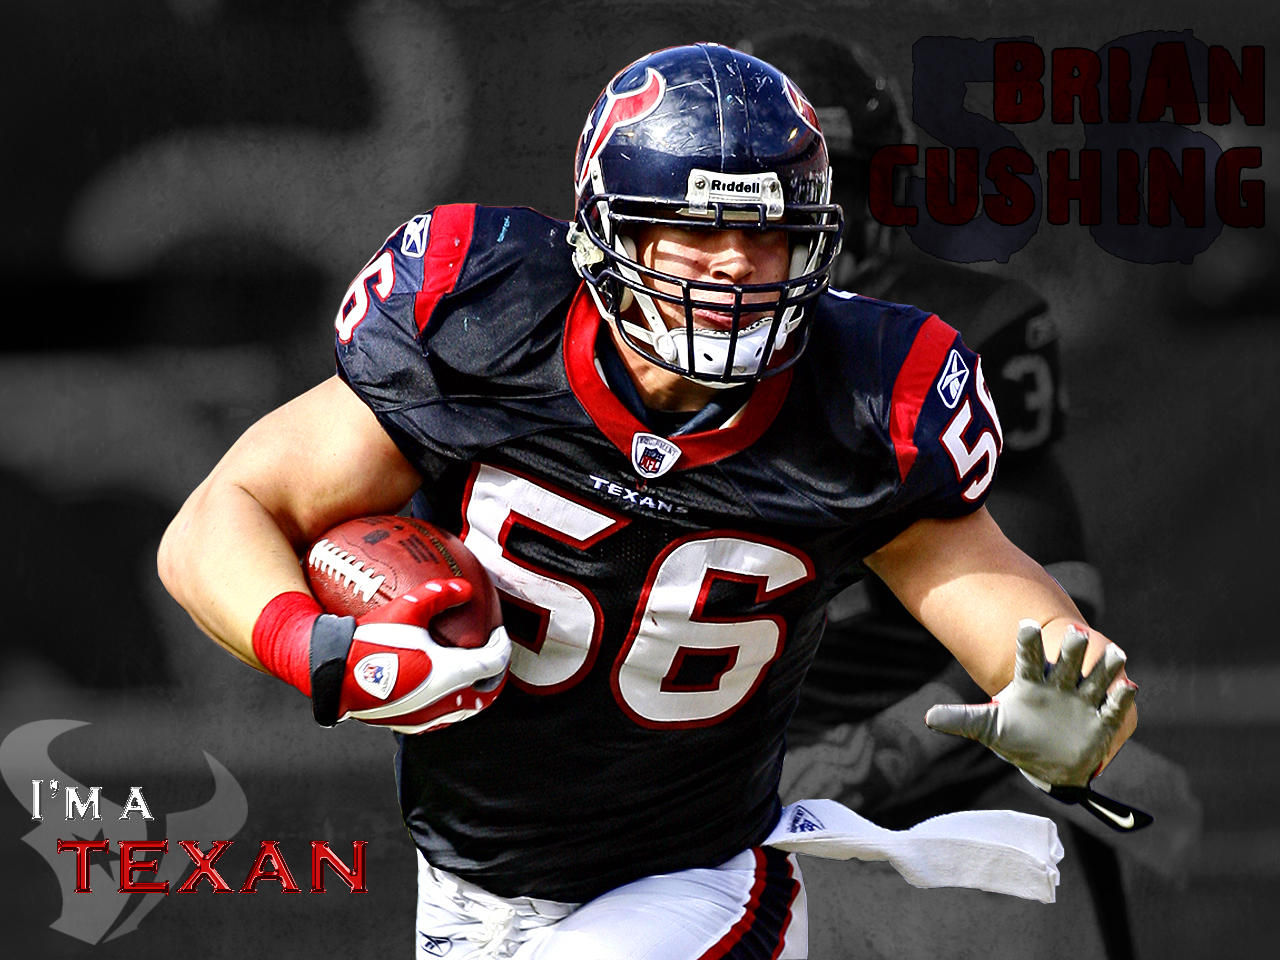 Houston Texans Wallpaper 2014 Sky HD Wallpaper 1280x960